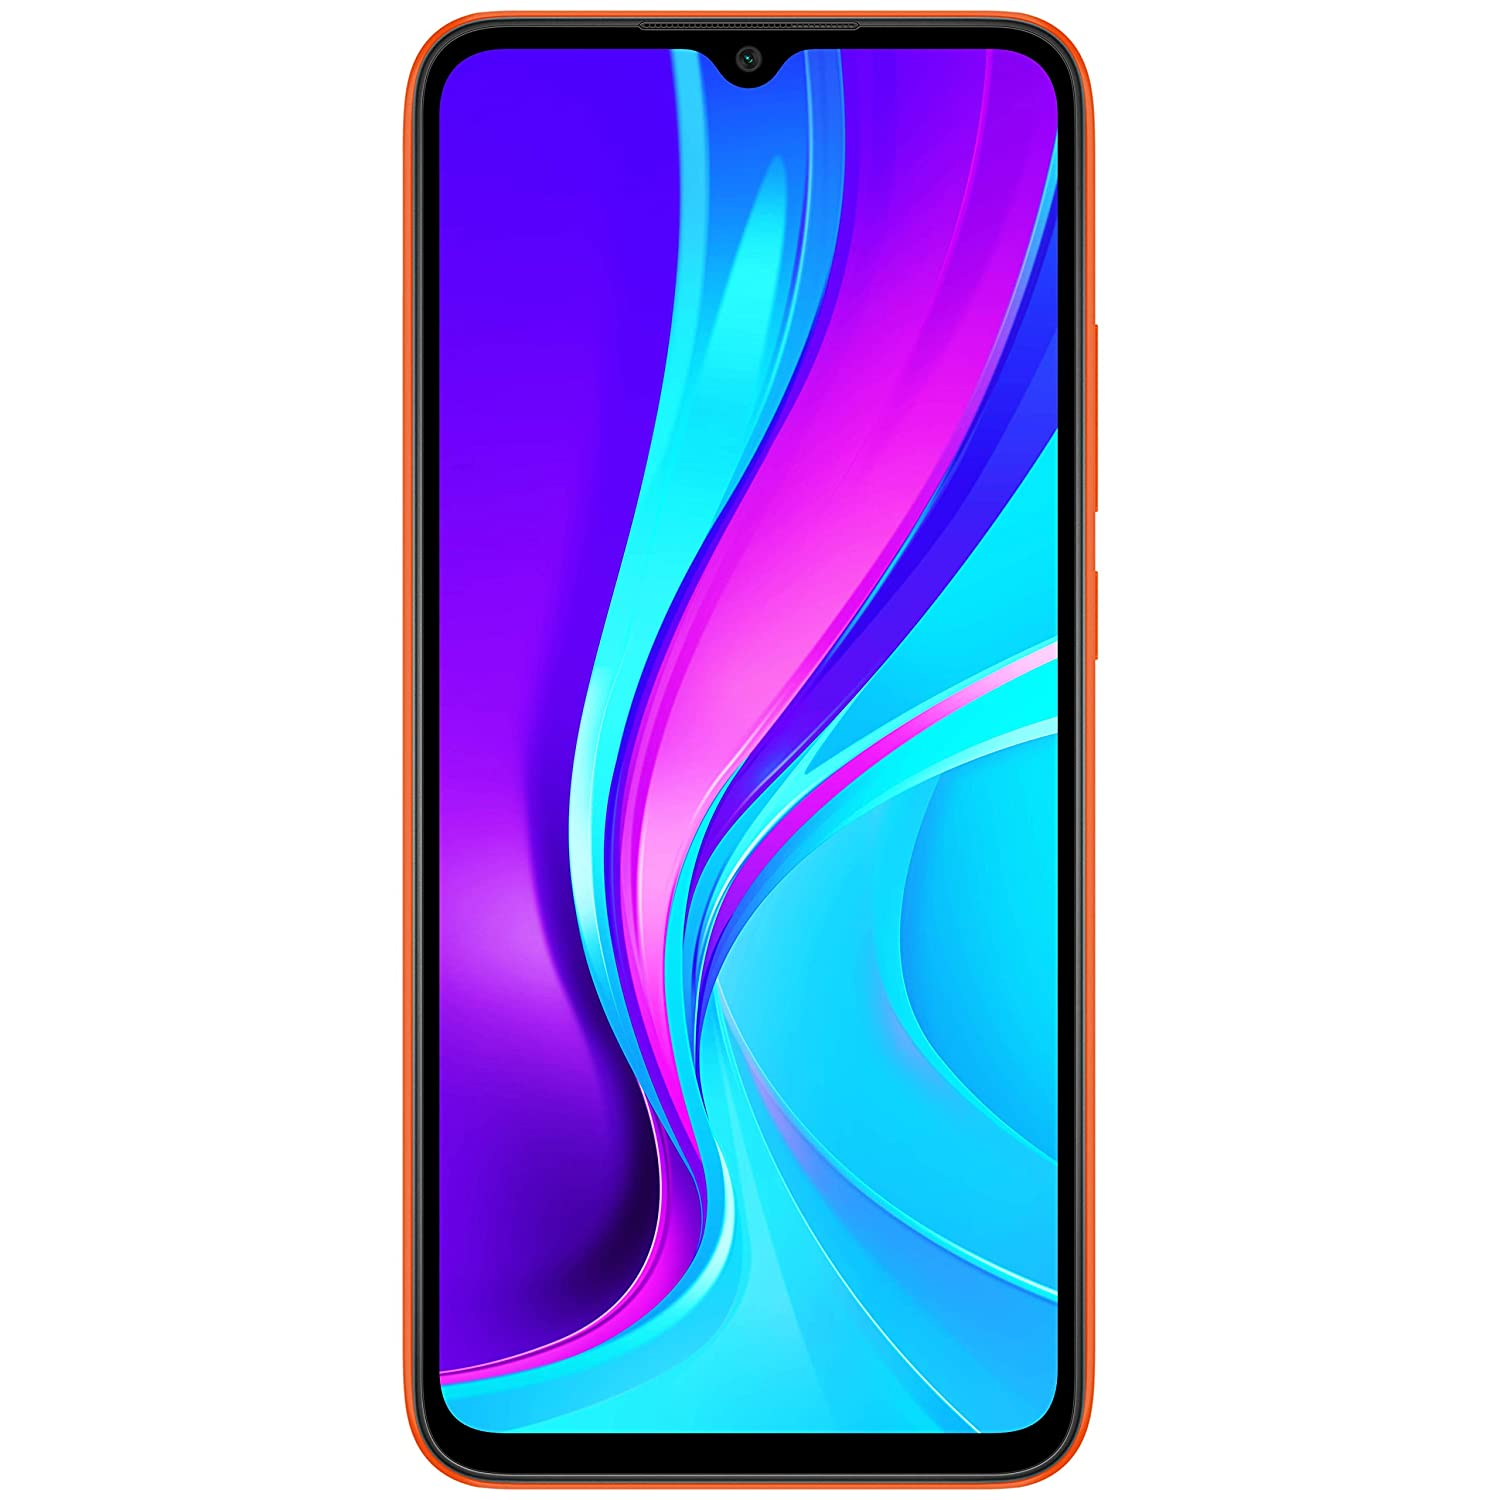 Redmi 9 (Sporty Orange, 4GB RAM, 64GB Storage) | 3 Months No Cost EMI on BFL